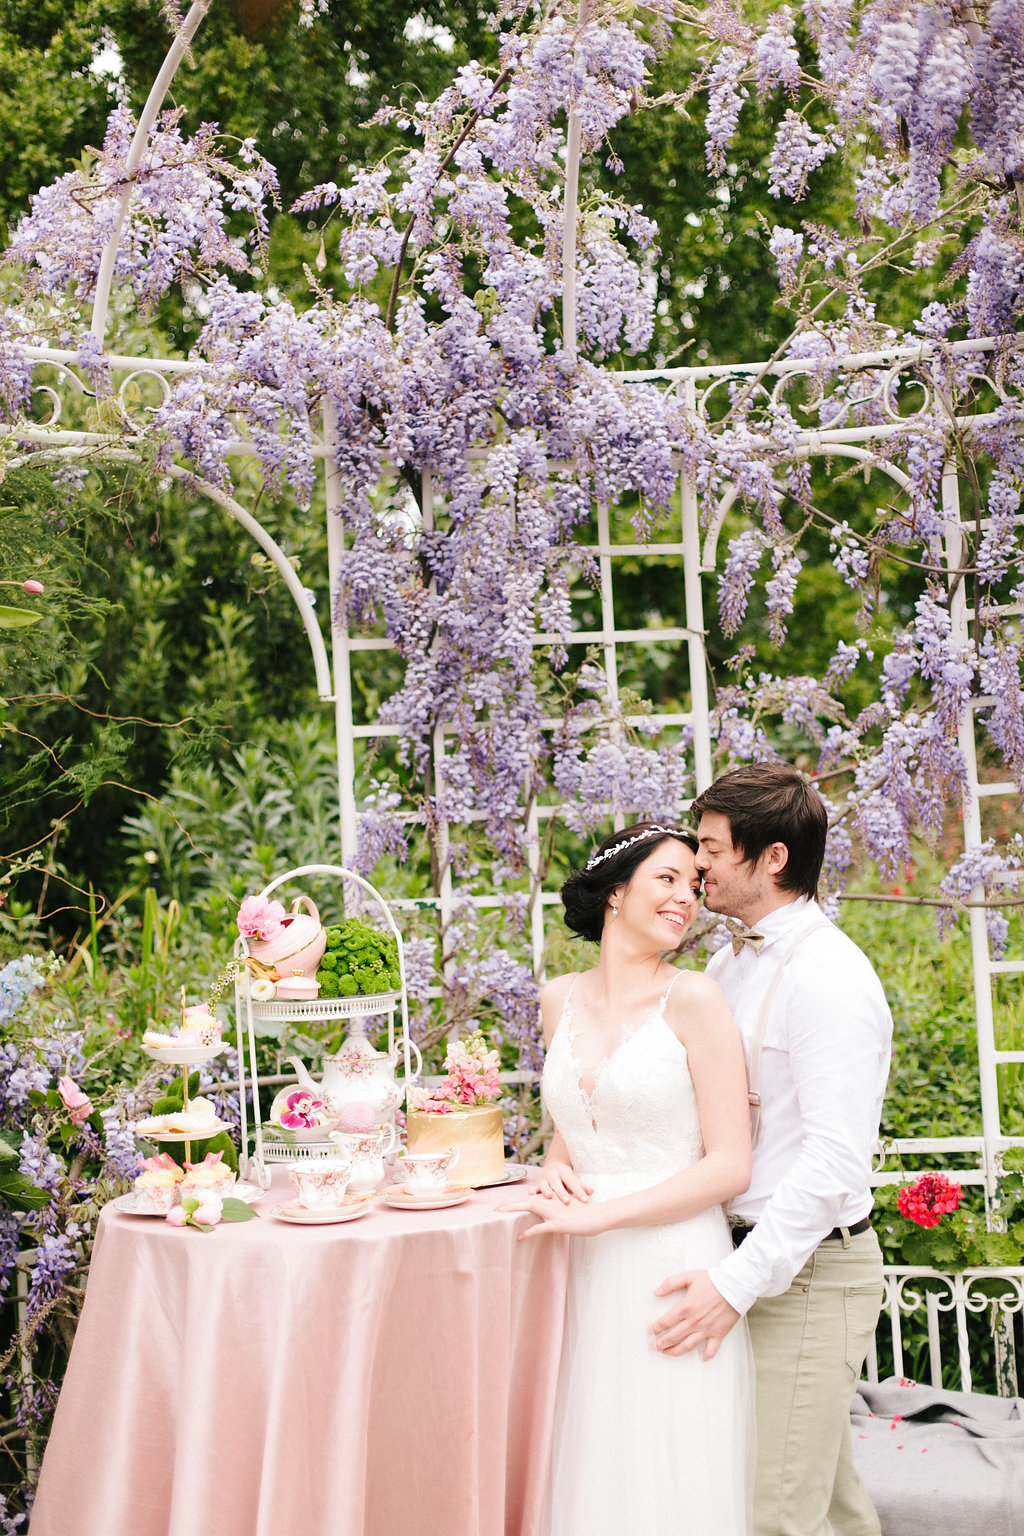 Garden Tea Party Wedding | Image: Nelani Van Zyl